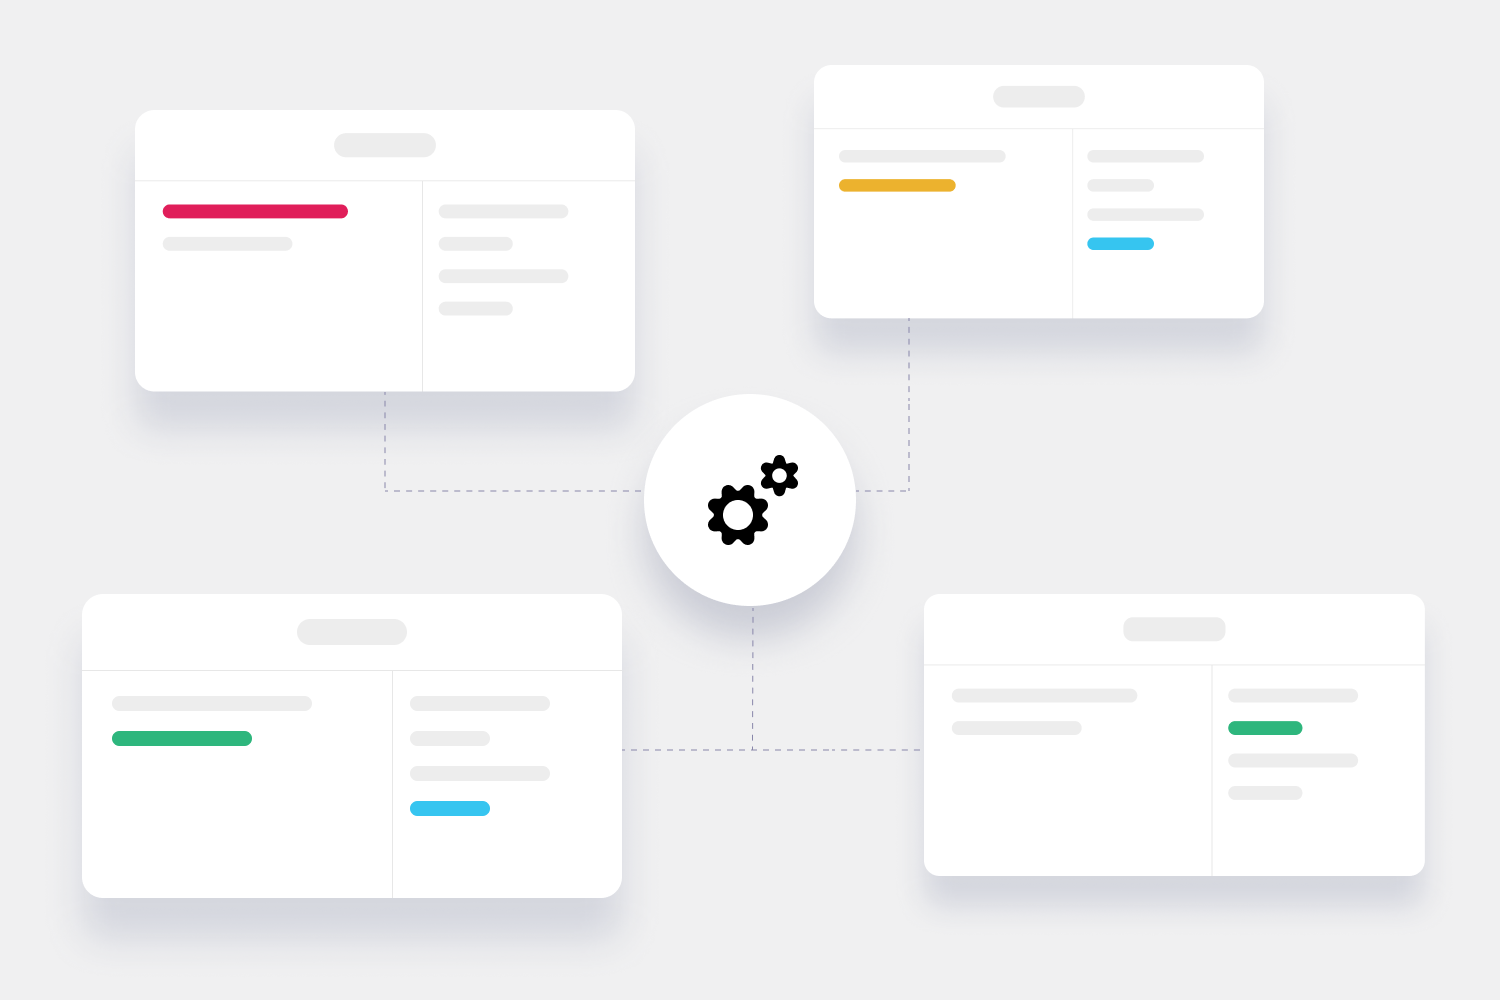 Data Models for Slack illustration